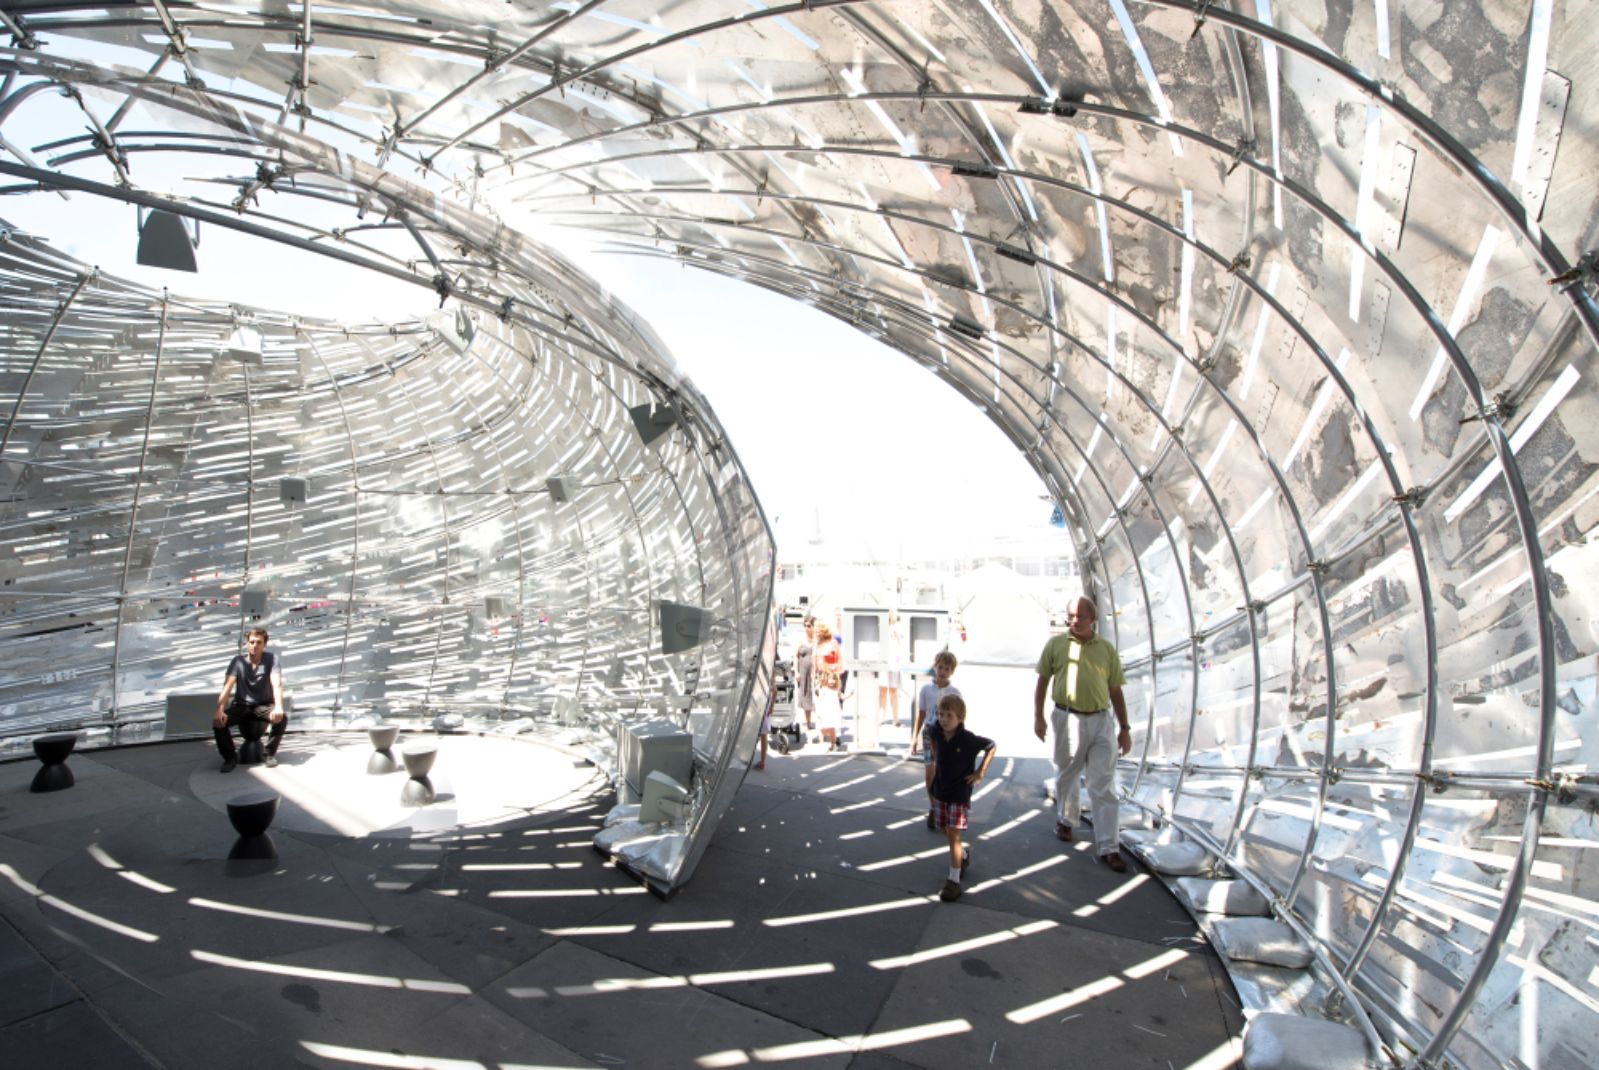 Nasa orbit pavilion by studiokca 10 for Nasa architecture